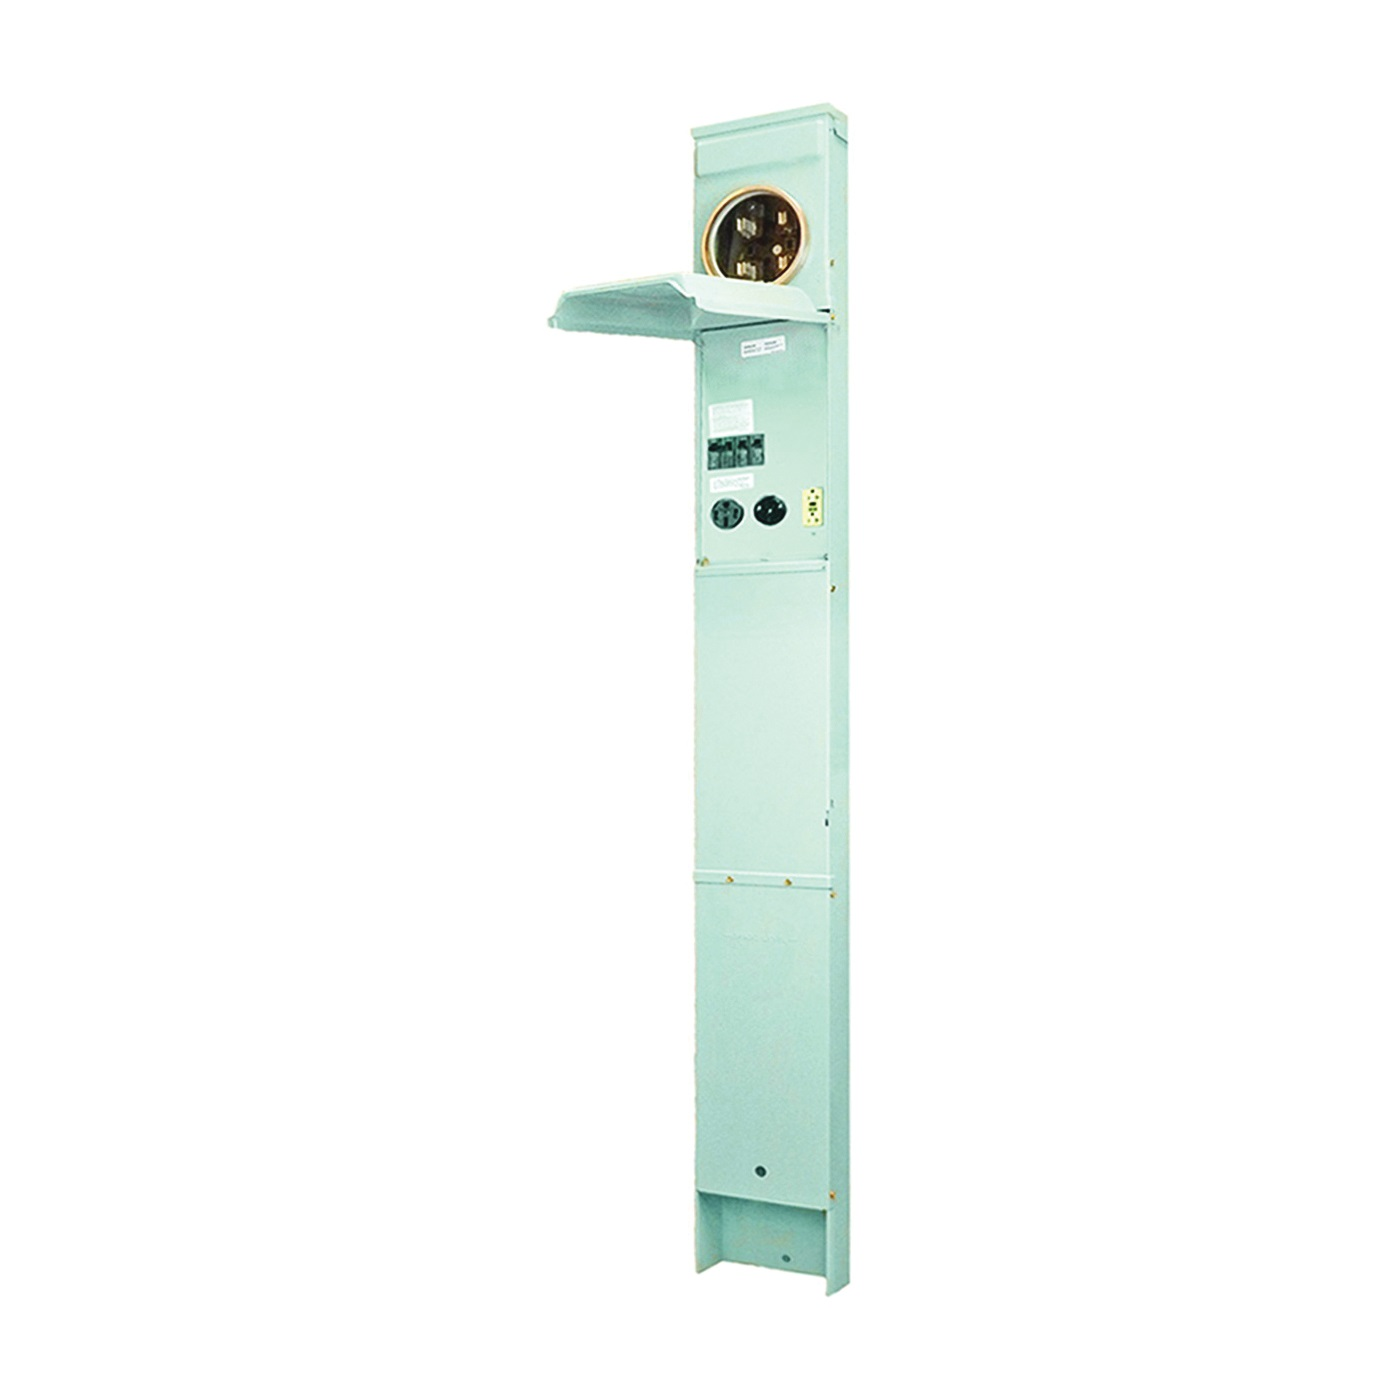 Picture of GE Industrial Solutions GE1LM532ES Metered Earth Burial Pedestal, 100 A, 120, 240 V, Plug-In Mounting